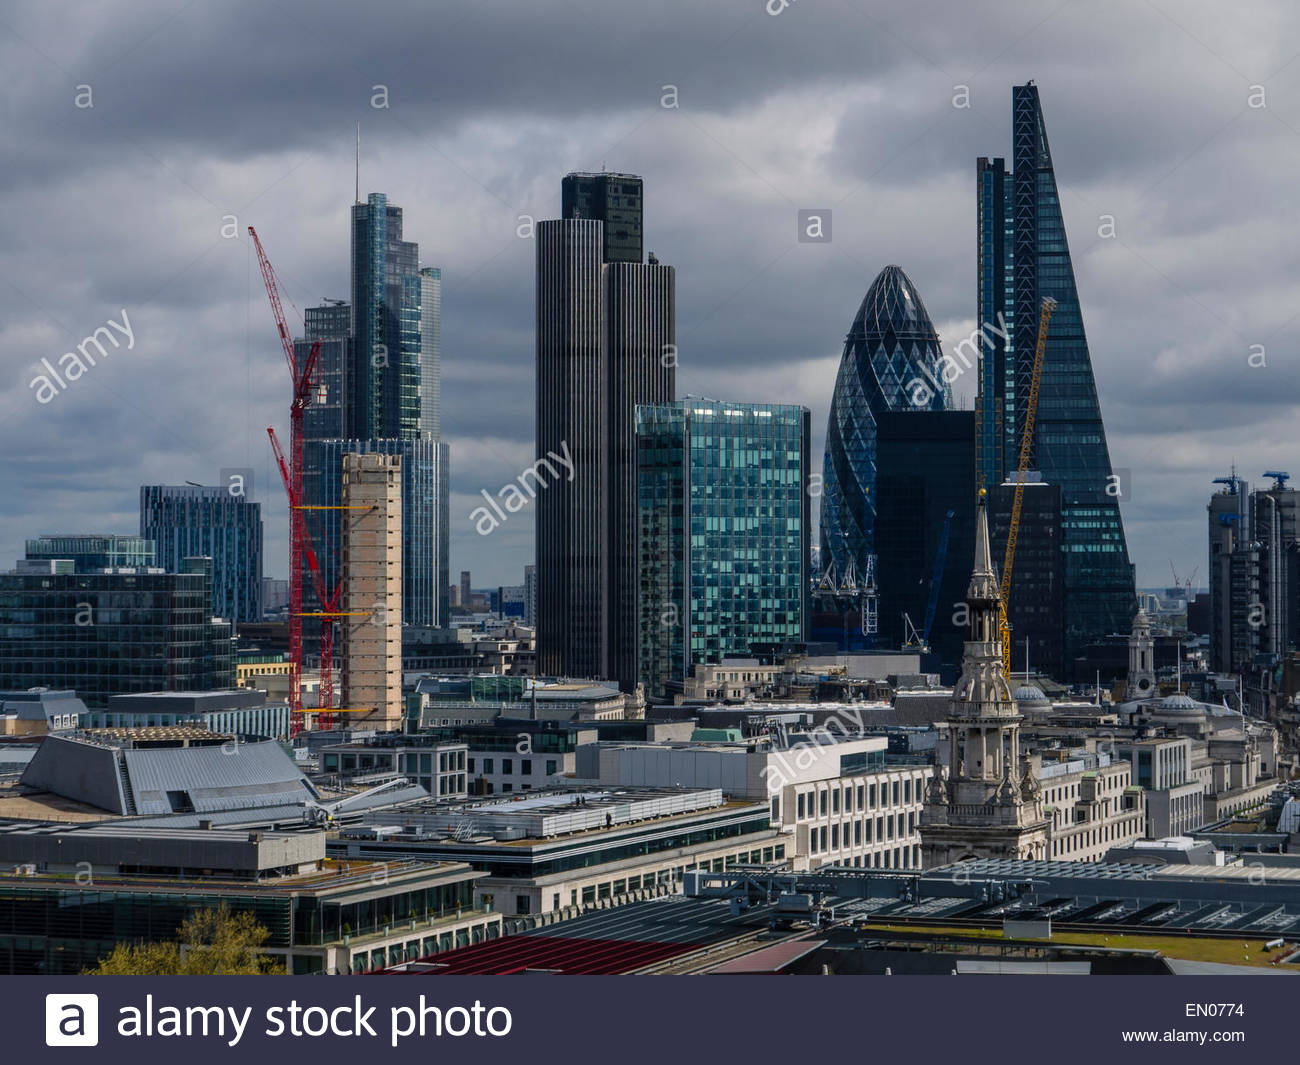 London View from Stone Gallery St Paul's Cathedral Dome England UK London - Stock Image